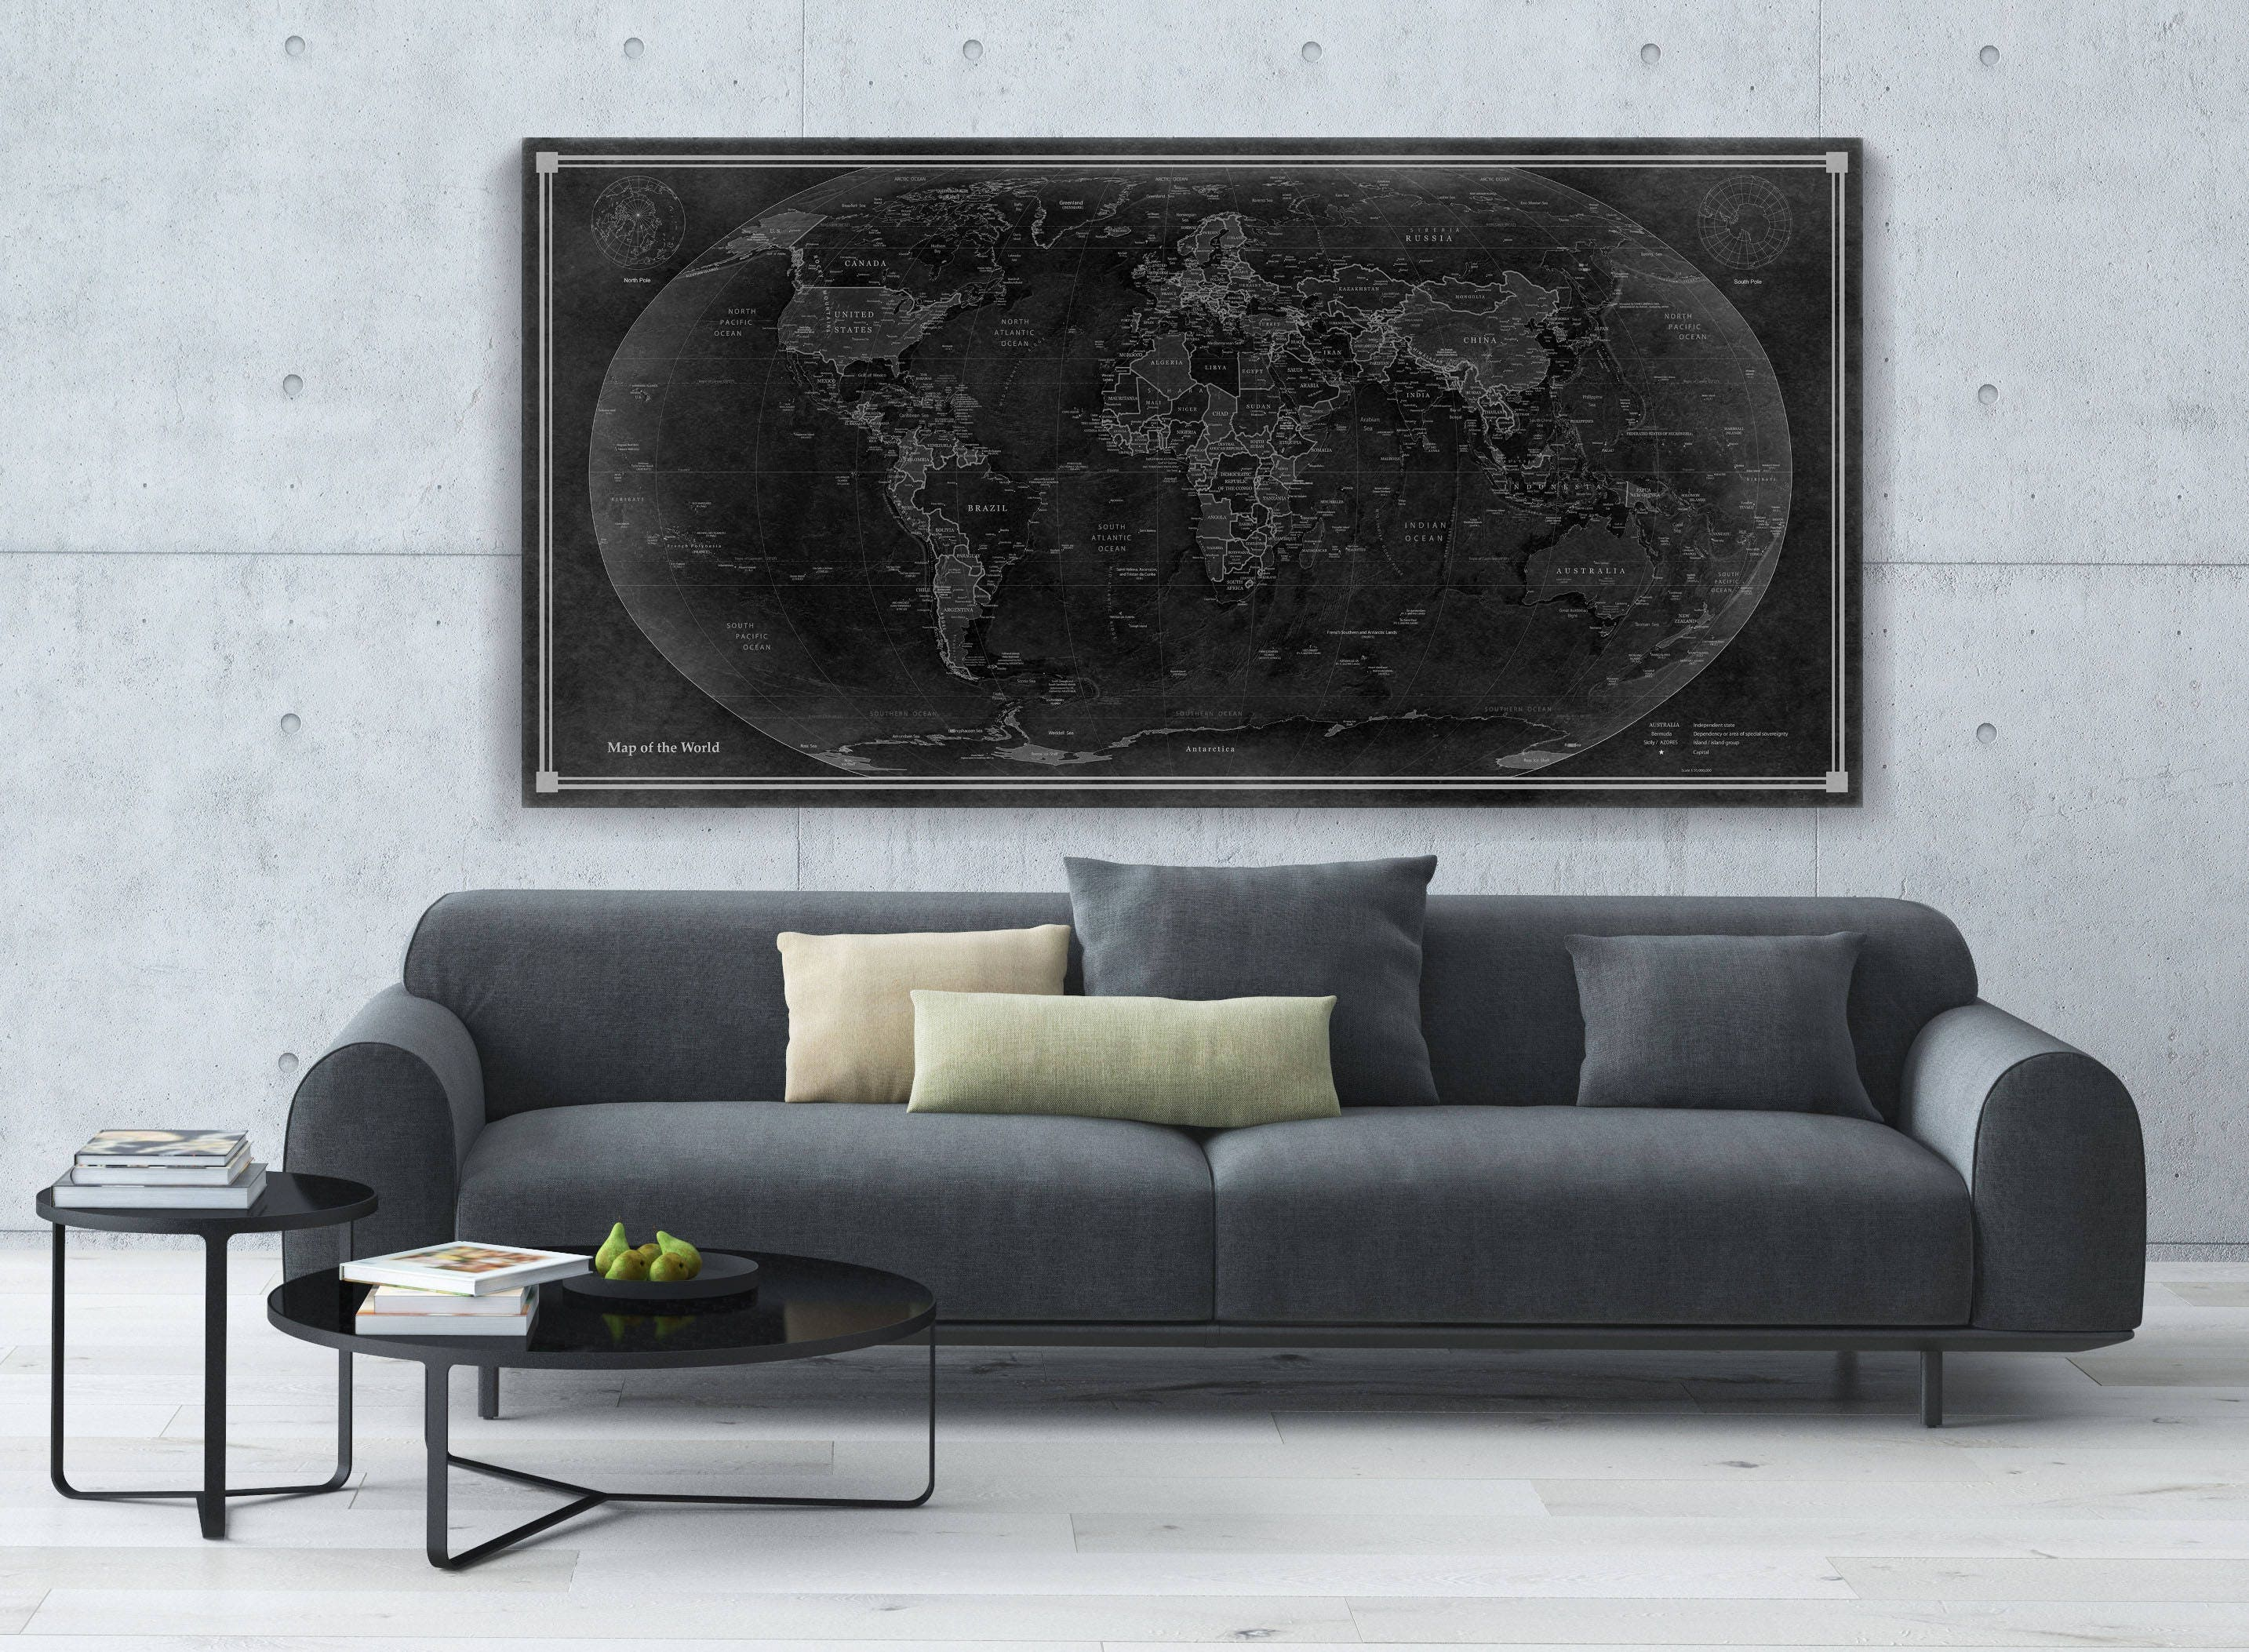 World map canvas or paper with old look 4080 max print or gallery world map canvas or paper with old look 4080 max print or gallery wrap 6 colors and 3 sizes to choose free shipping usa publicscrutiny Gallery